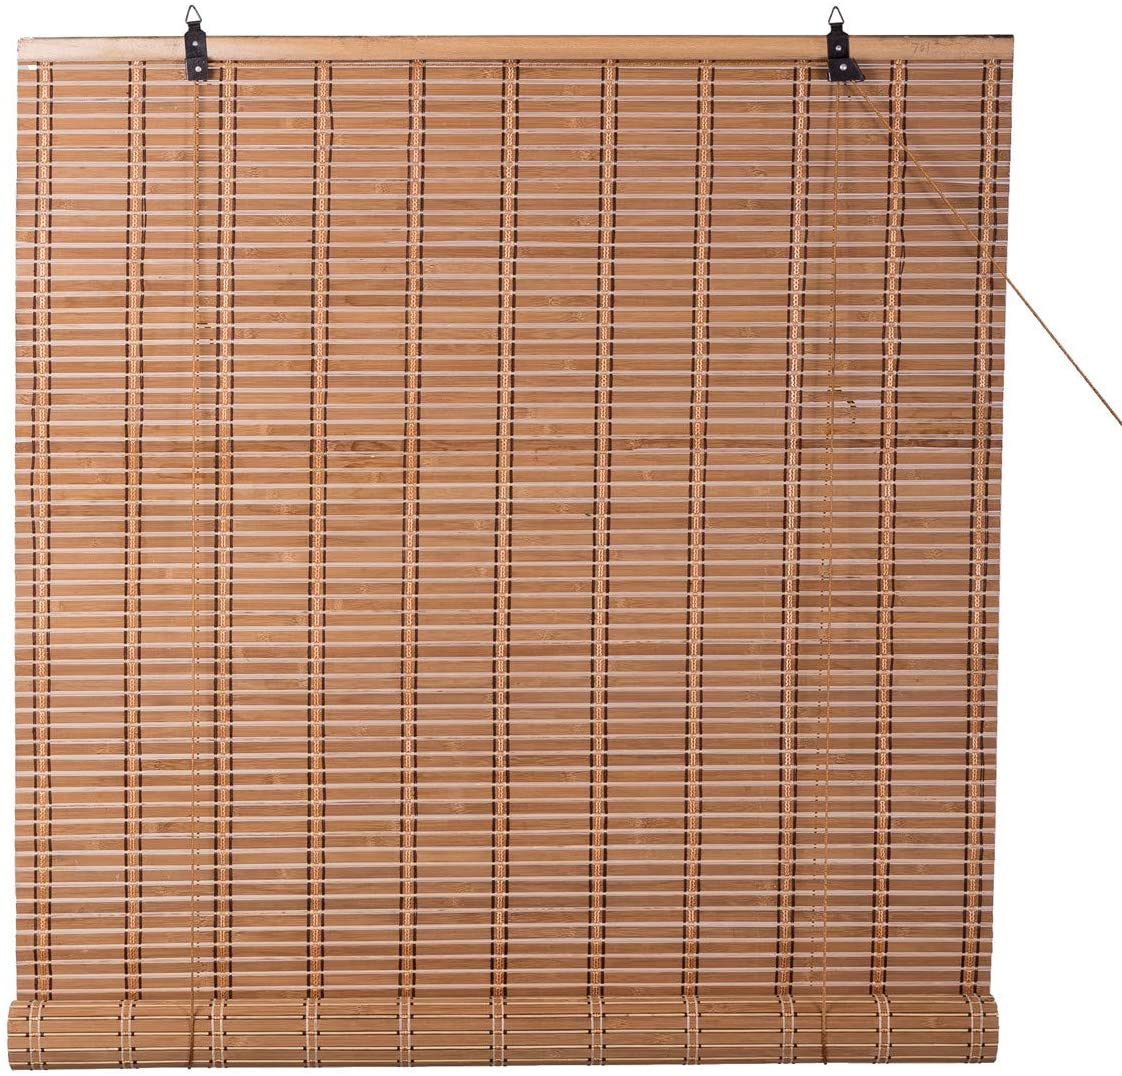 TJ Global Bamboo Roll Up Window Blind Sun Shade, Light Filtering Roller Shades (42